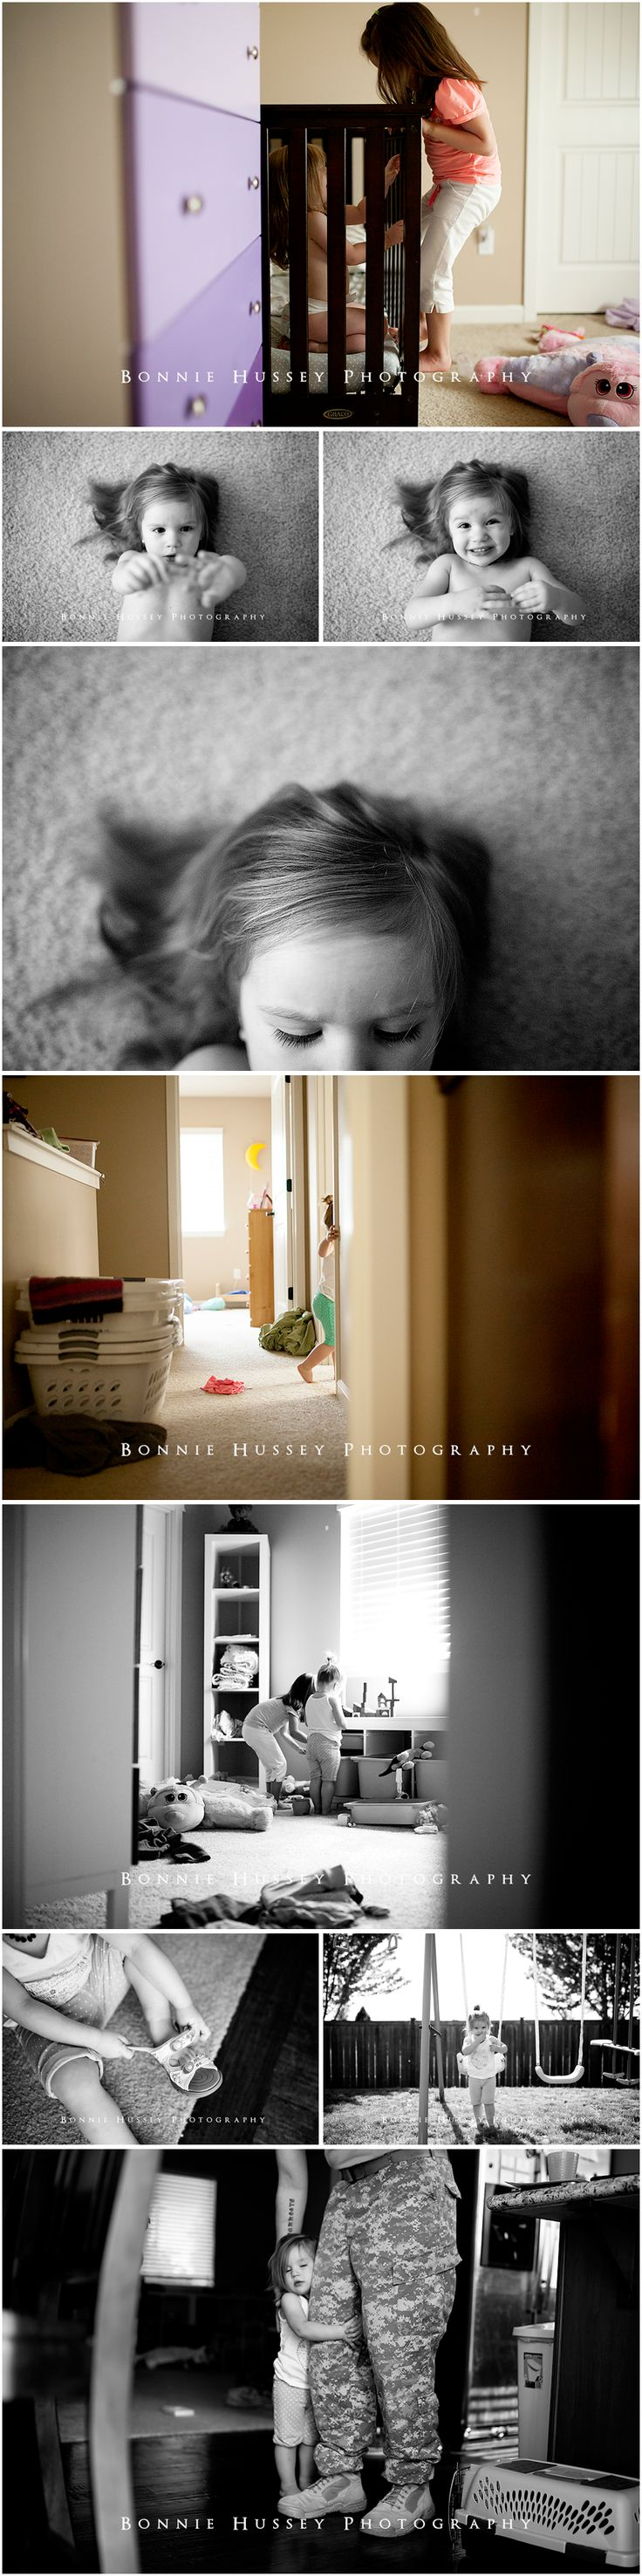 Day in the Life of | Olympia-Family-Photographer5 #bcpro #bcpros #bcmentor #inbeautyandchaos #cmpro #clickinmomspro #lifestyle #storytellingphotography #dayinthelifeof #dayinthelife #ditl #olympiafamilyphotography #bonniehusseyphotography